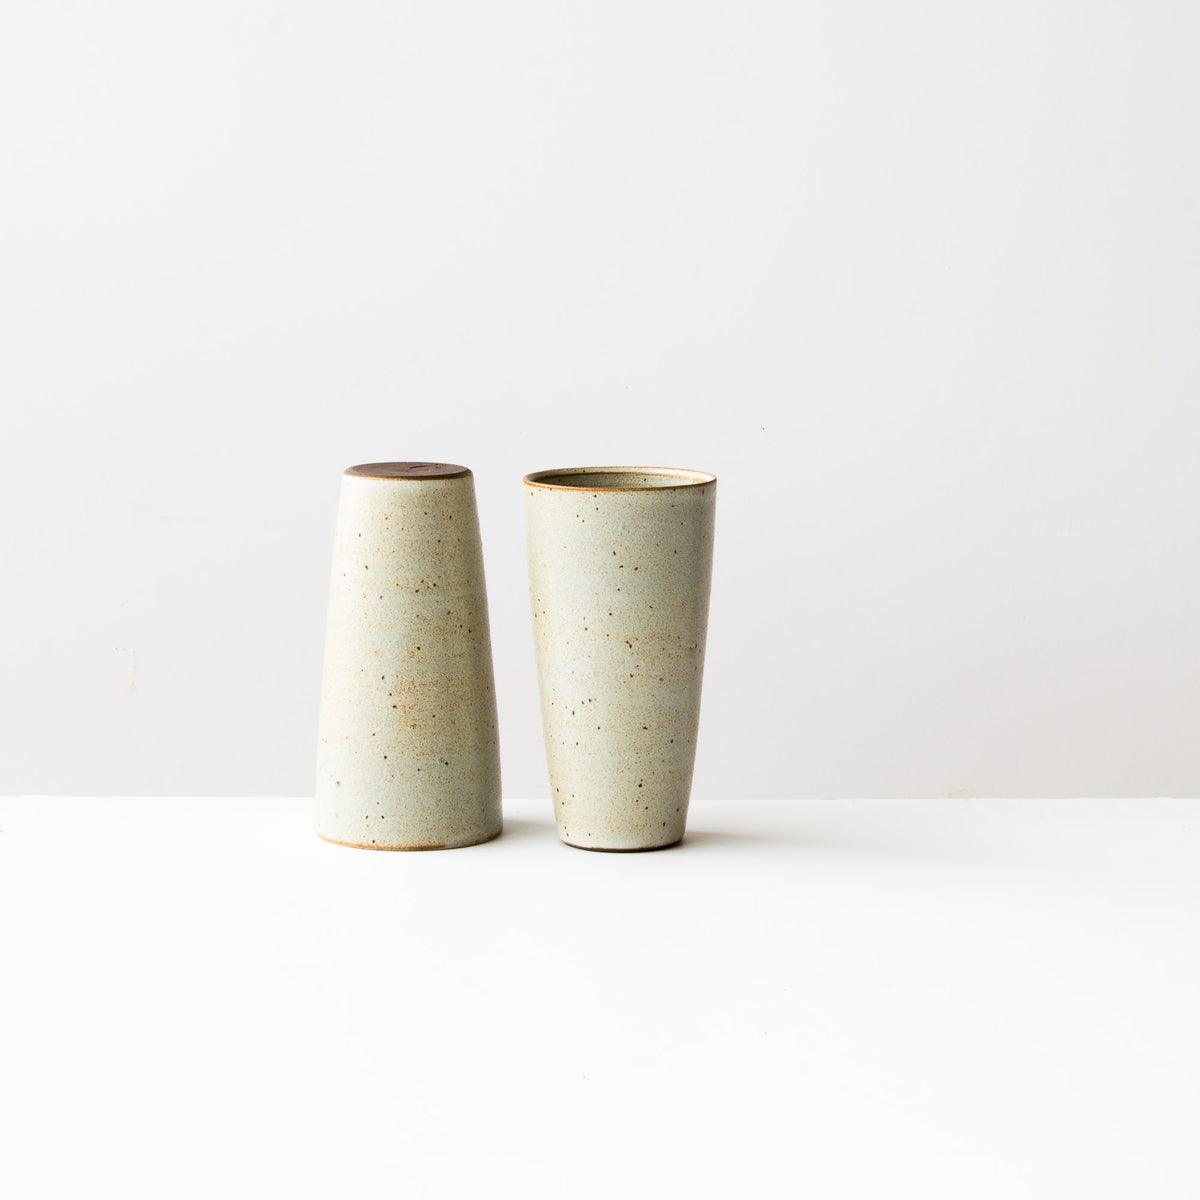 Greige Colour - Two Handmade Tall Ceramic Tumblers - Sold by Chic & Basta